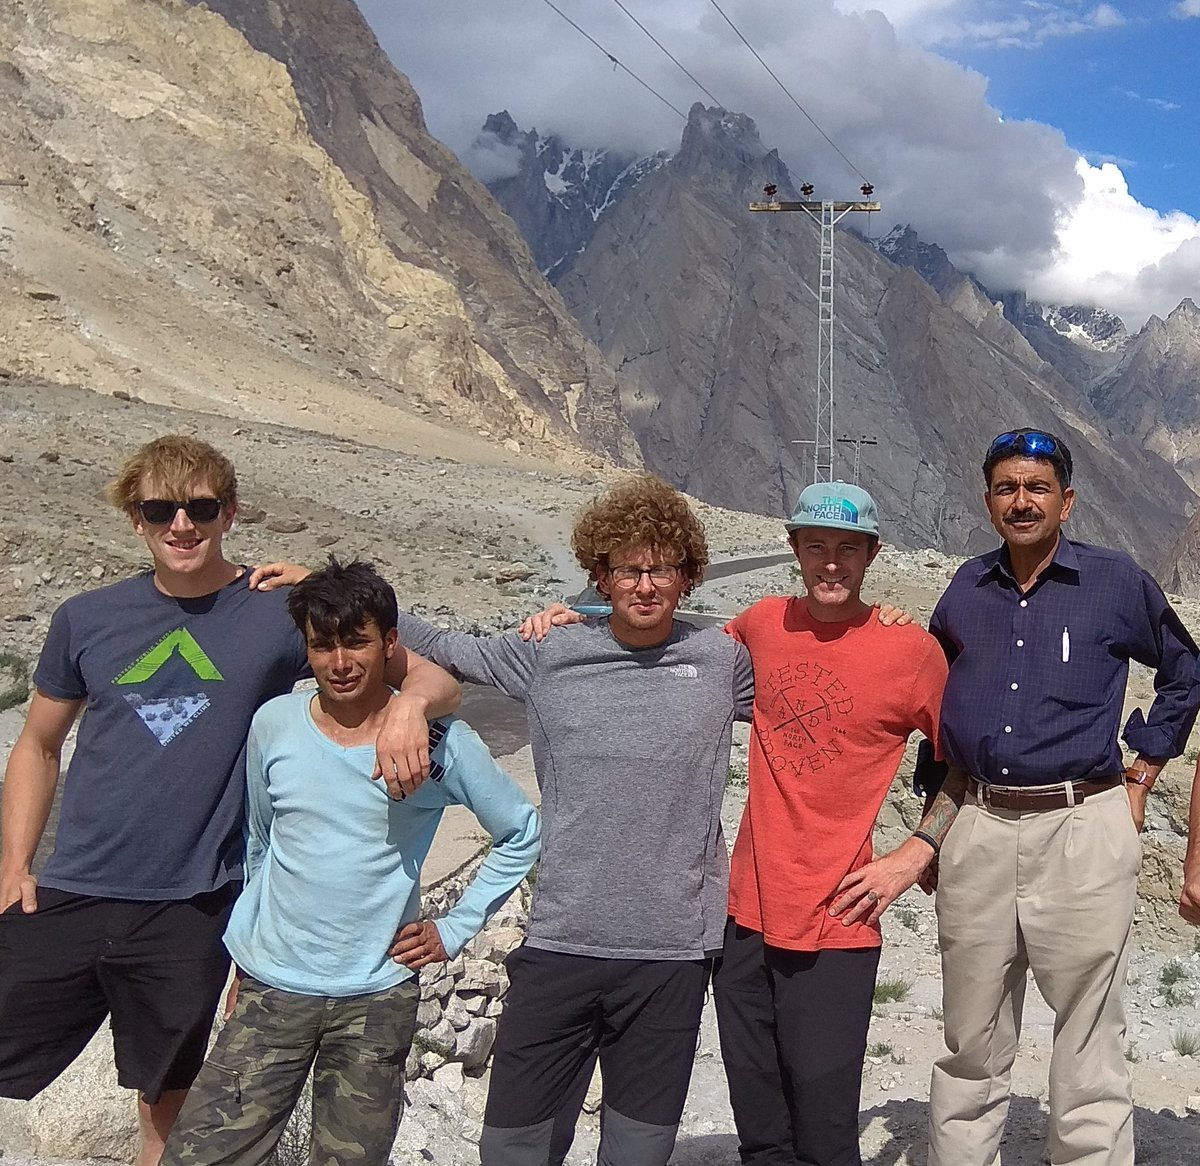 First American youngest Everest climber Jess Roskelley killed in avalanche. we lost great friend climber, My thoughts are with familys friends at this very difficult time. We tell the dead to rest in peace, when we should worry about the living to live in peace. Rest in peace  <br>http://pic.twitter.com/5nlsC1WdB6